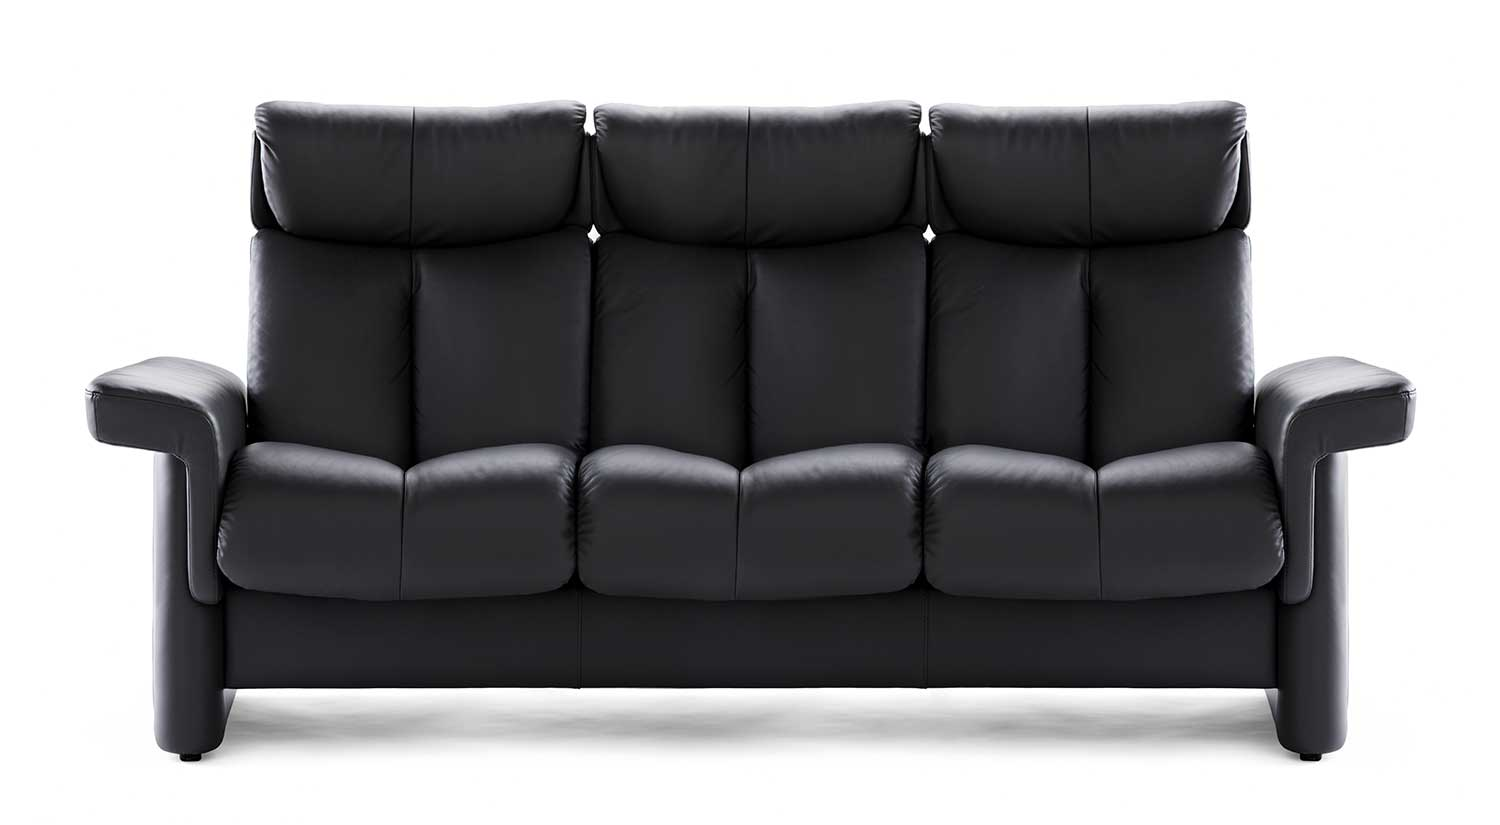 ekornes sofas 1 ekornes stressless chairs recliners dealer modern furniture thesofa. Black Bedroom Furniture Sets. Home Design Ideas